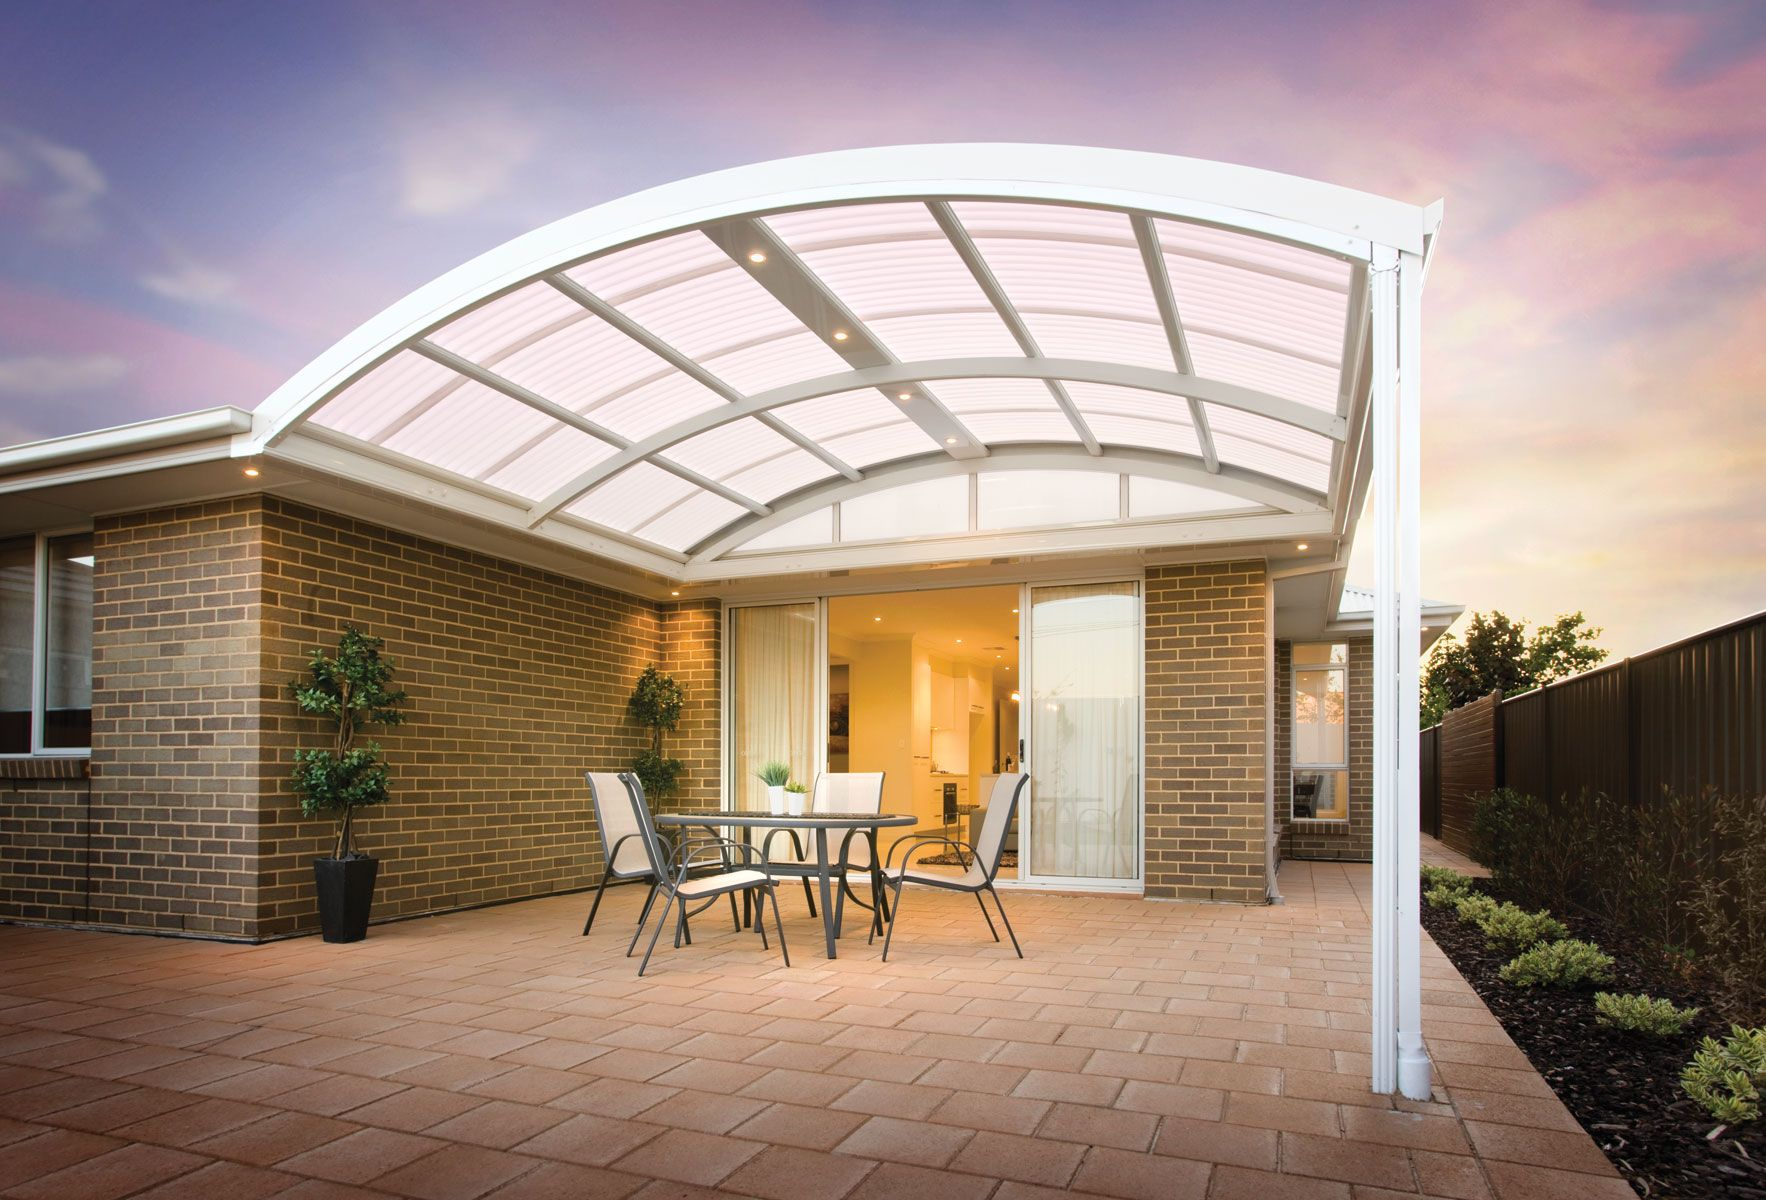 The Stratco Outback Curved Roof Patio is a unique, sleek